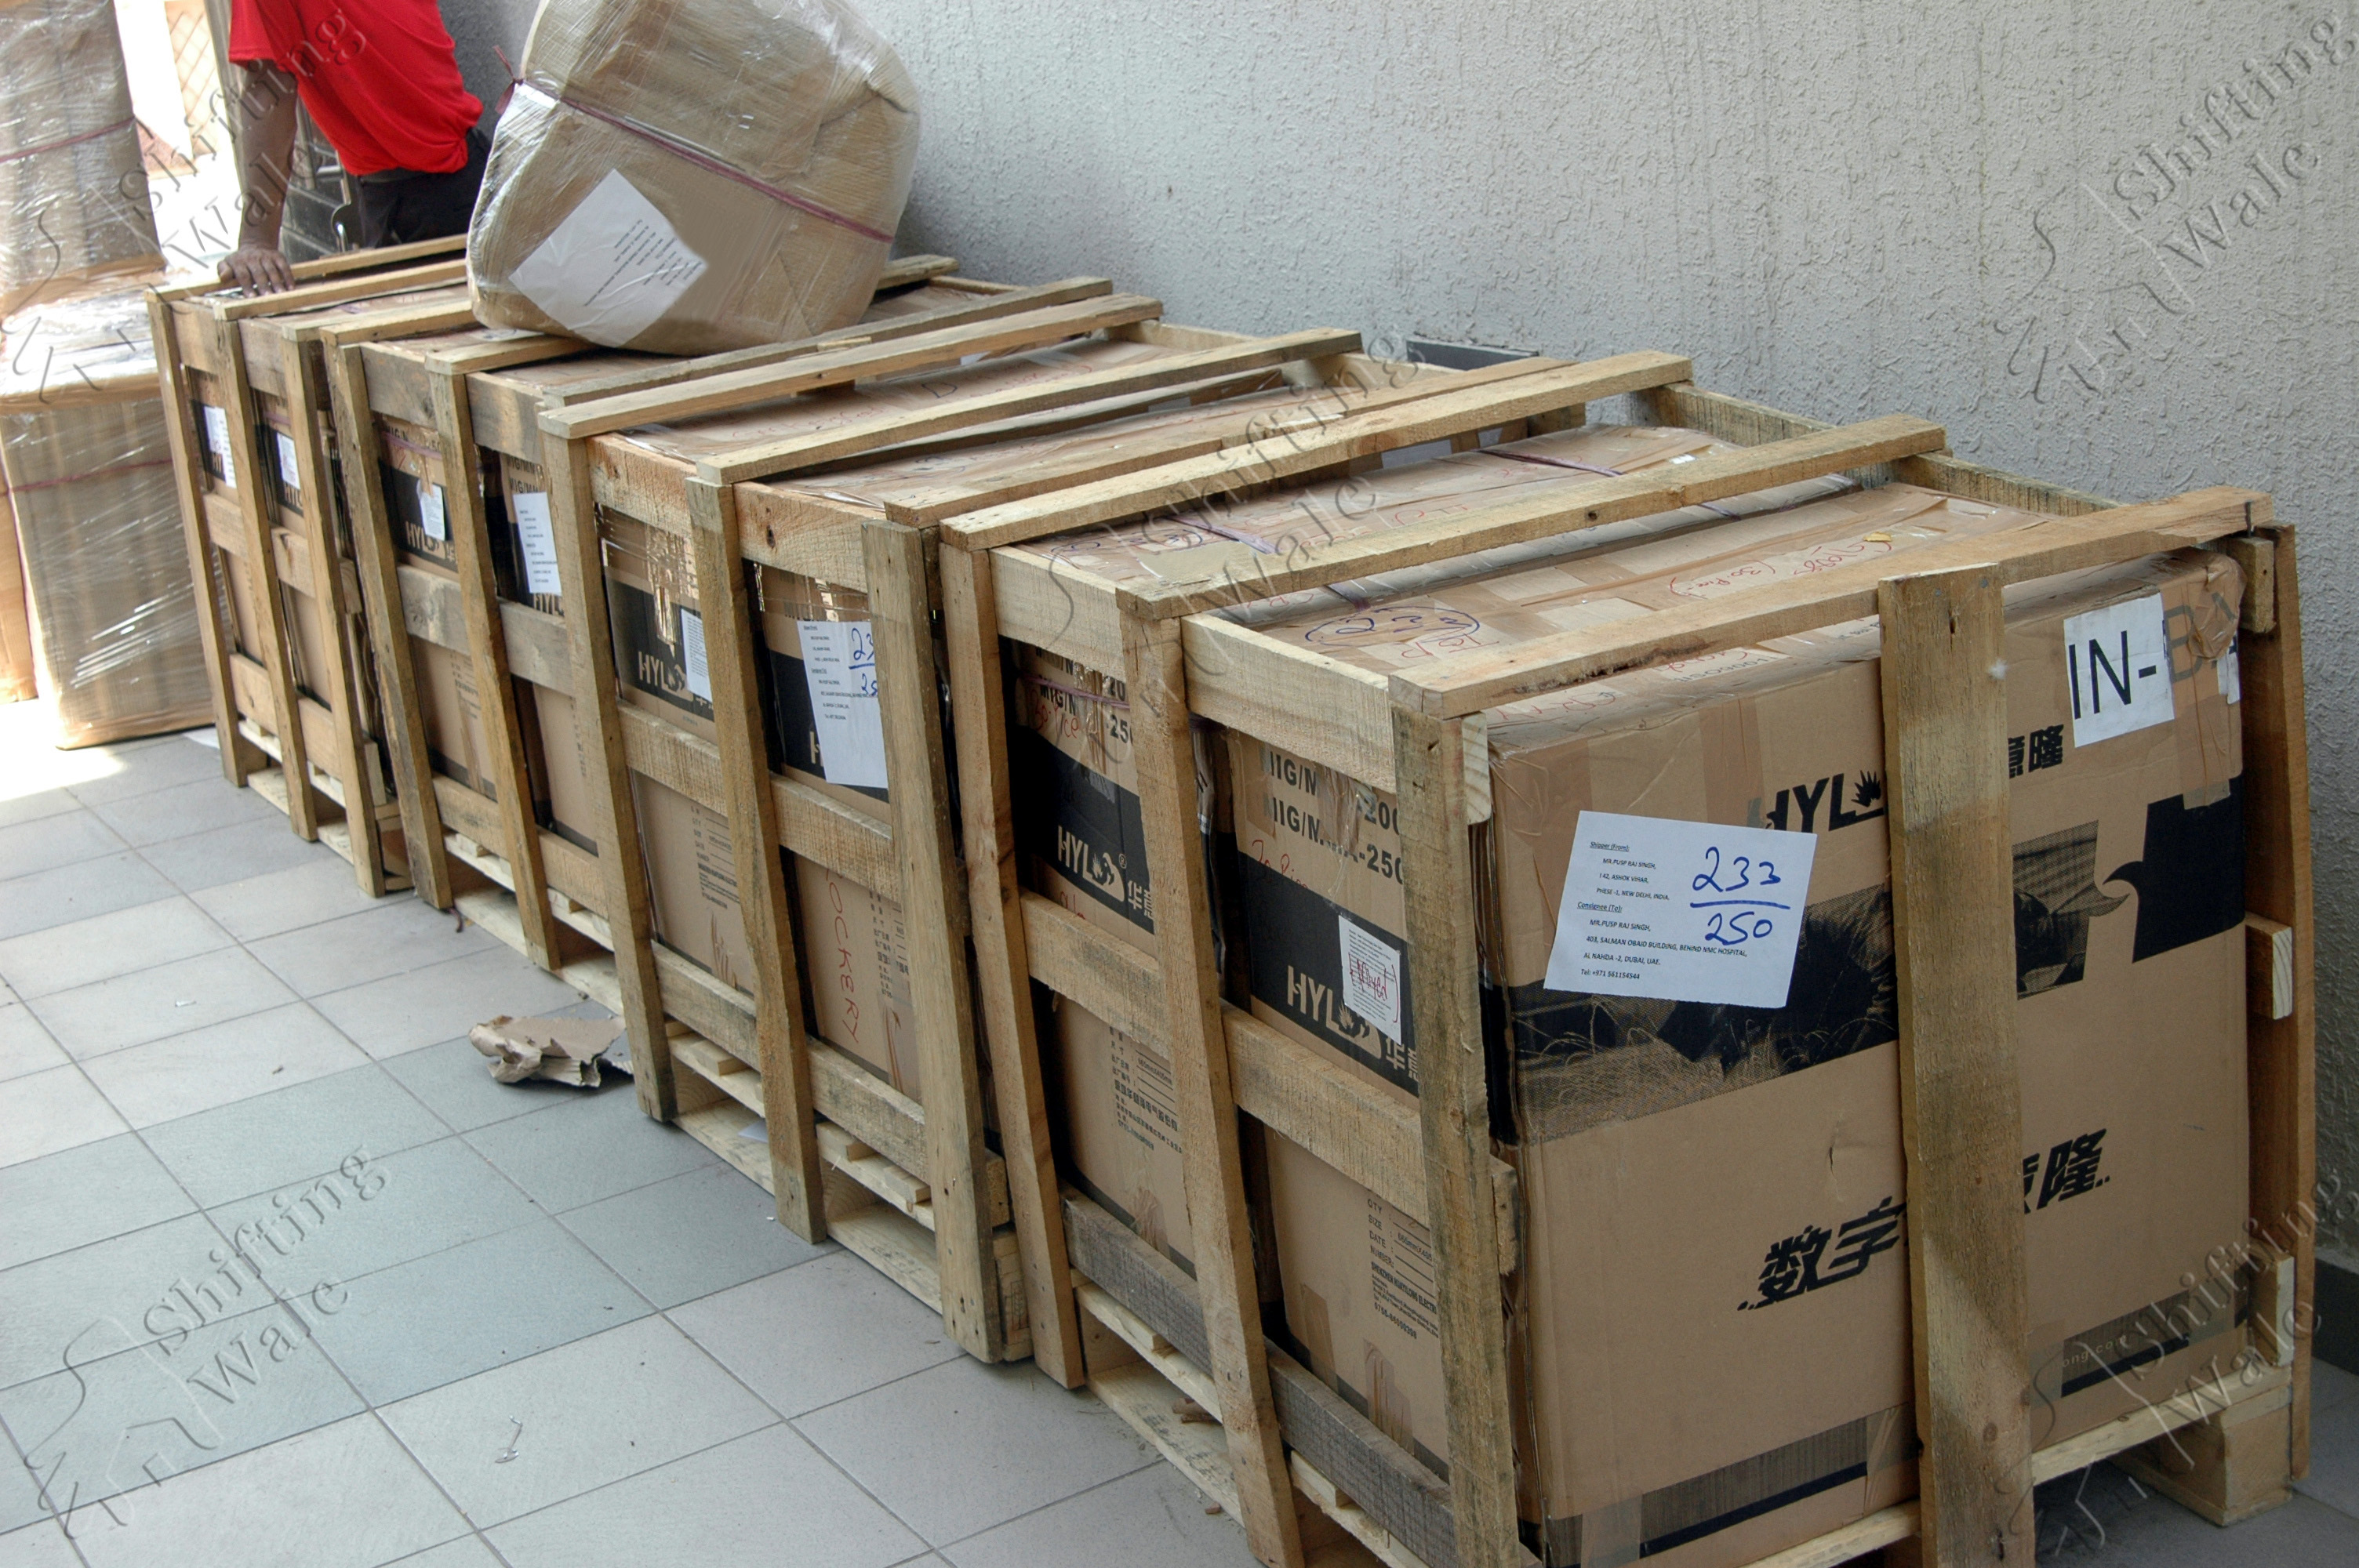 Best With in City Packing Services